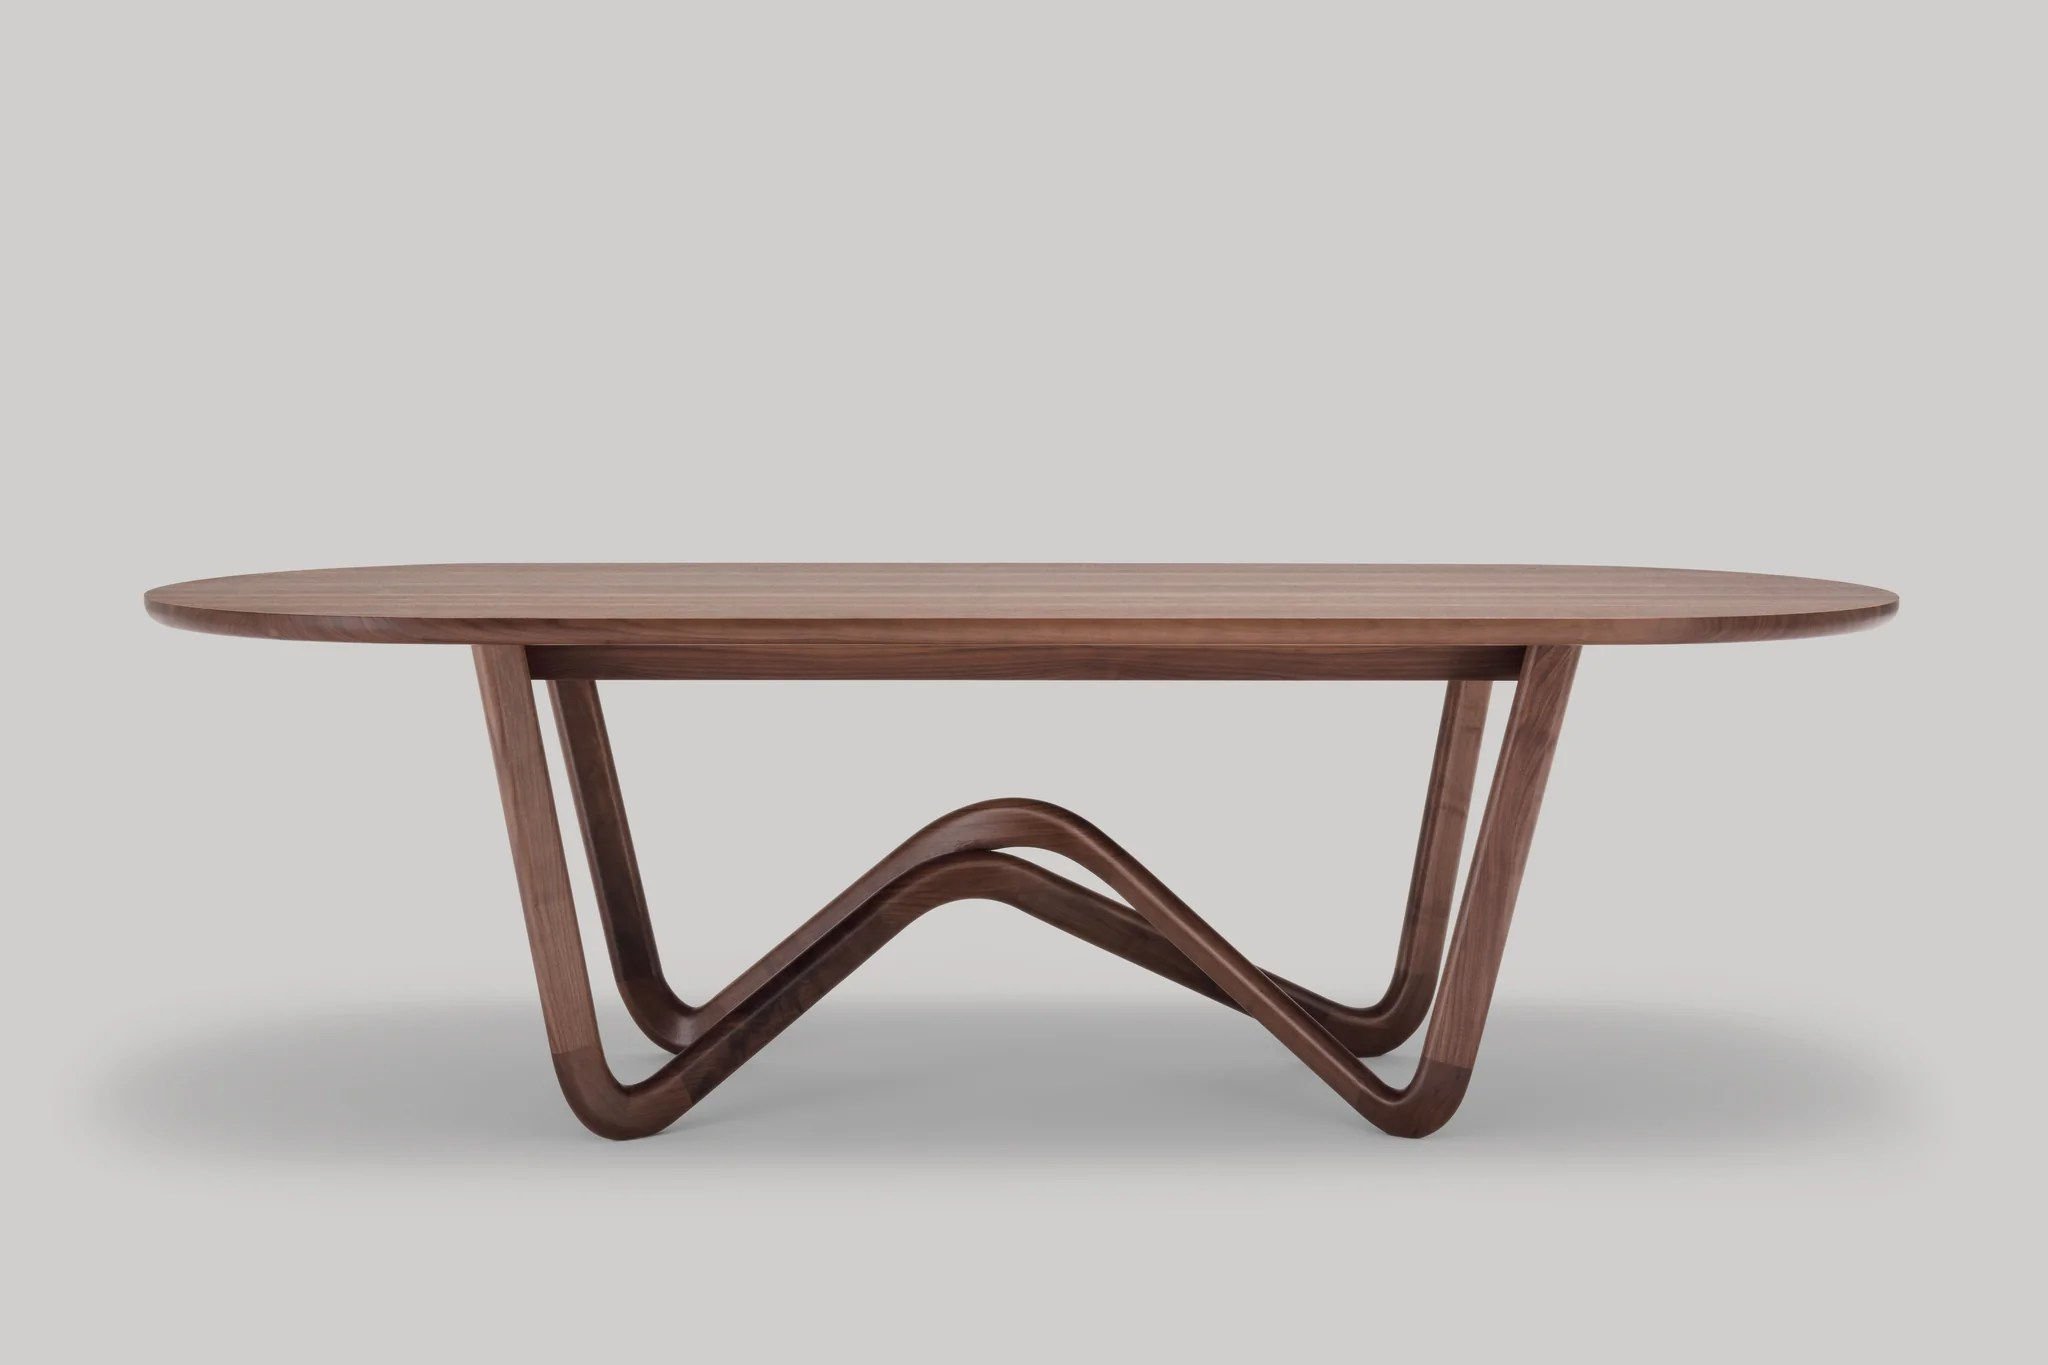 Rolf Benz Tisch Rolf Benz Table 988